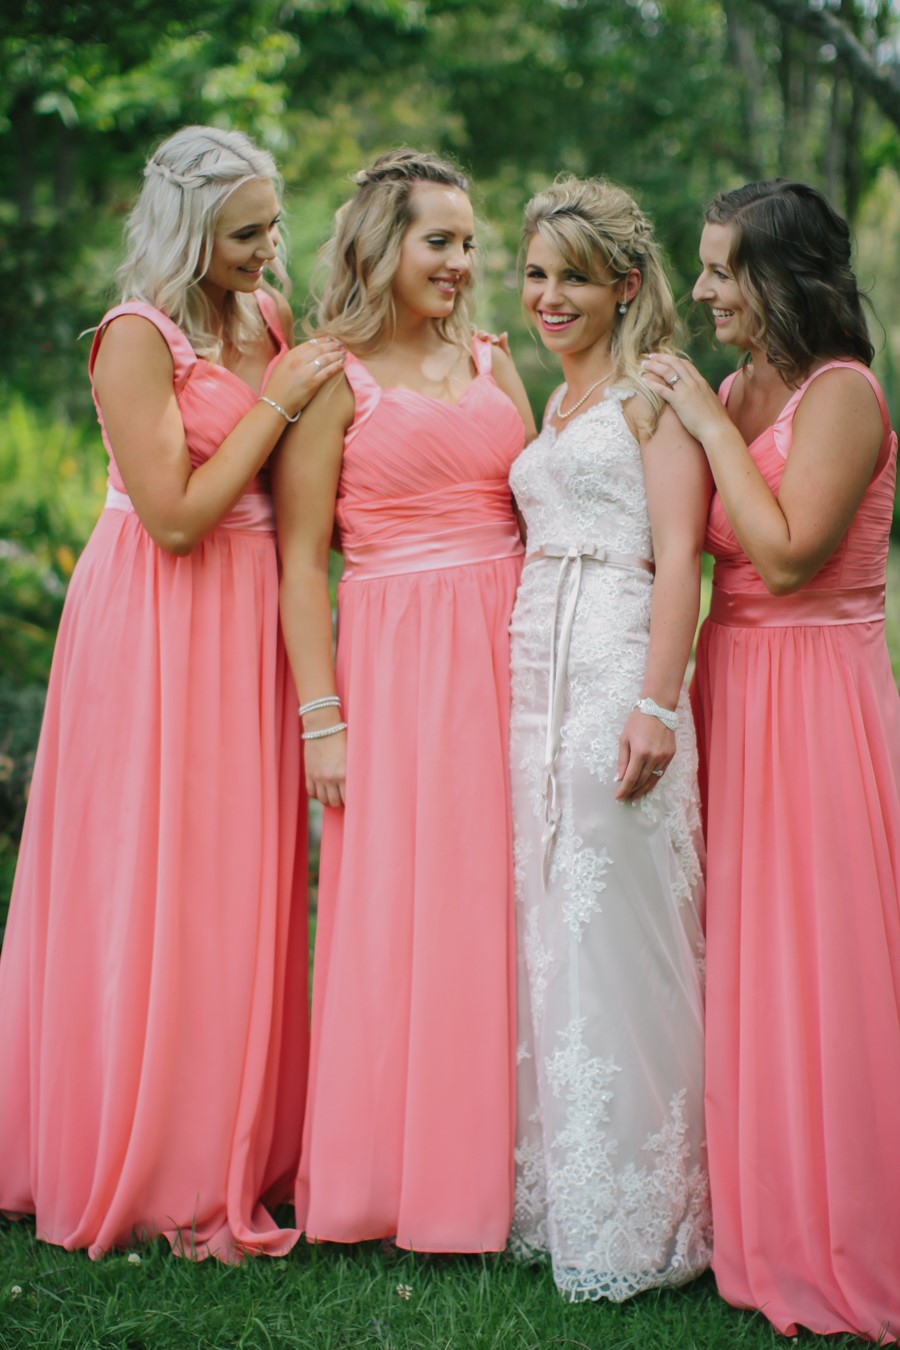 silverdale_wedding_nz_photographer-119